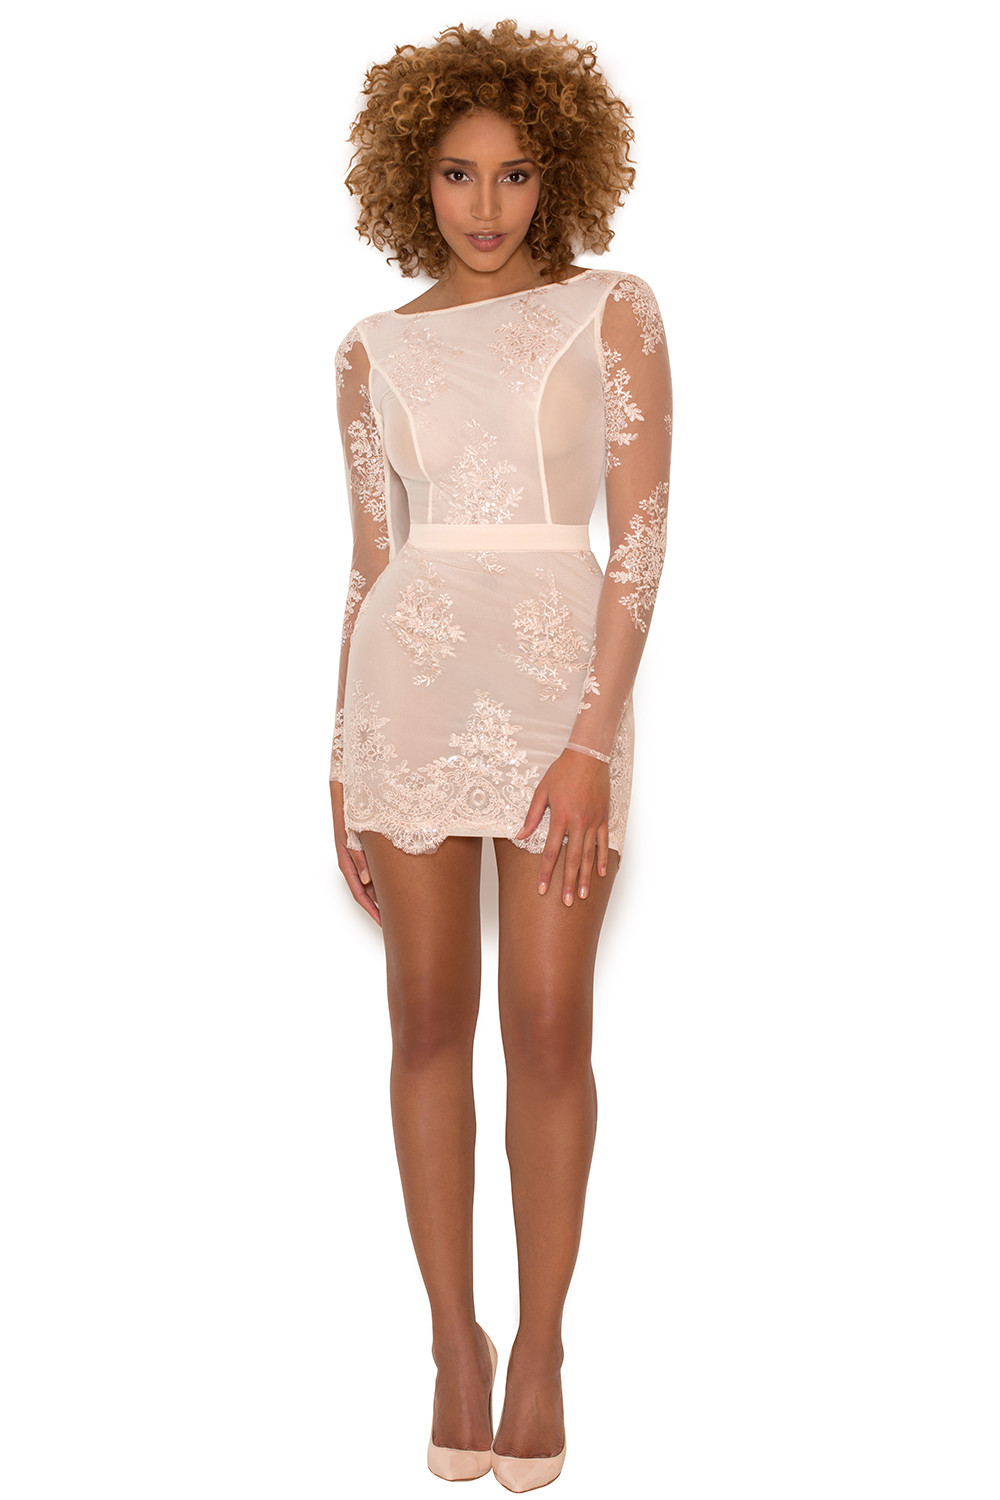 clothing bodycon dresses 39 sathea 39 light pink lace and. Black Bedroom Furniture Sets. Home Design Ideas